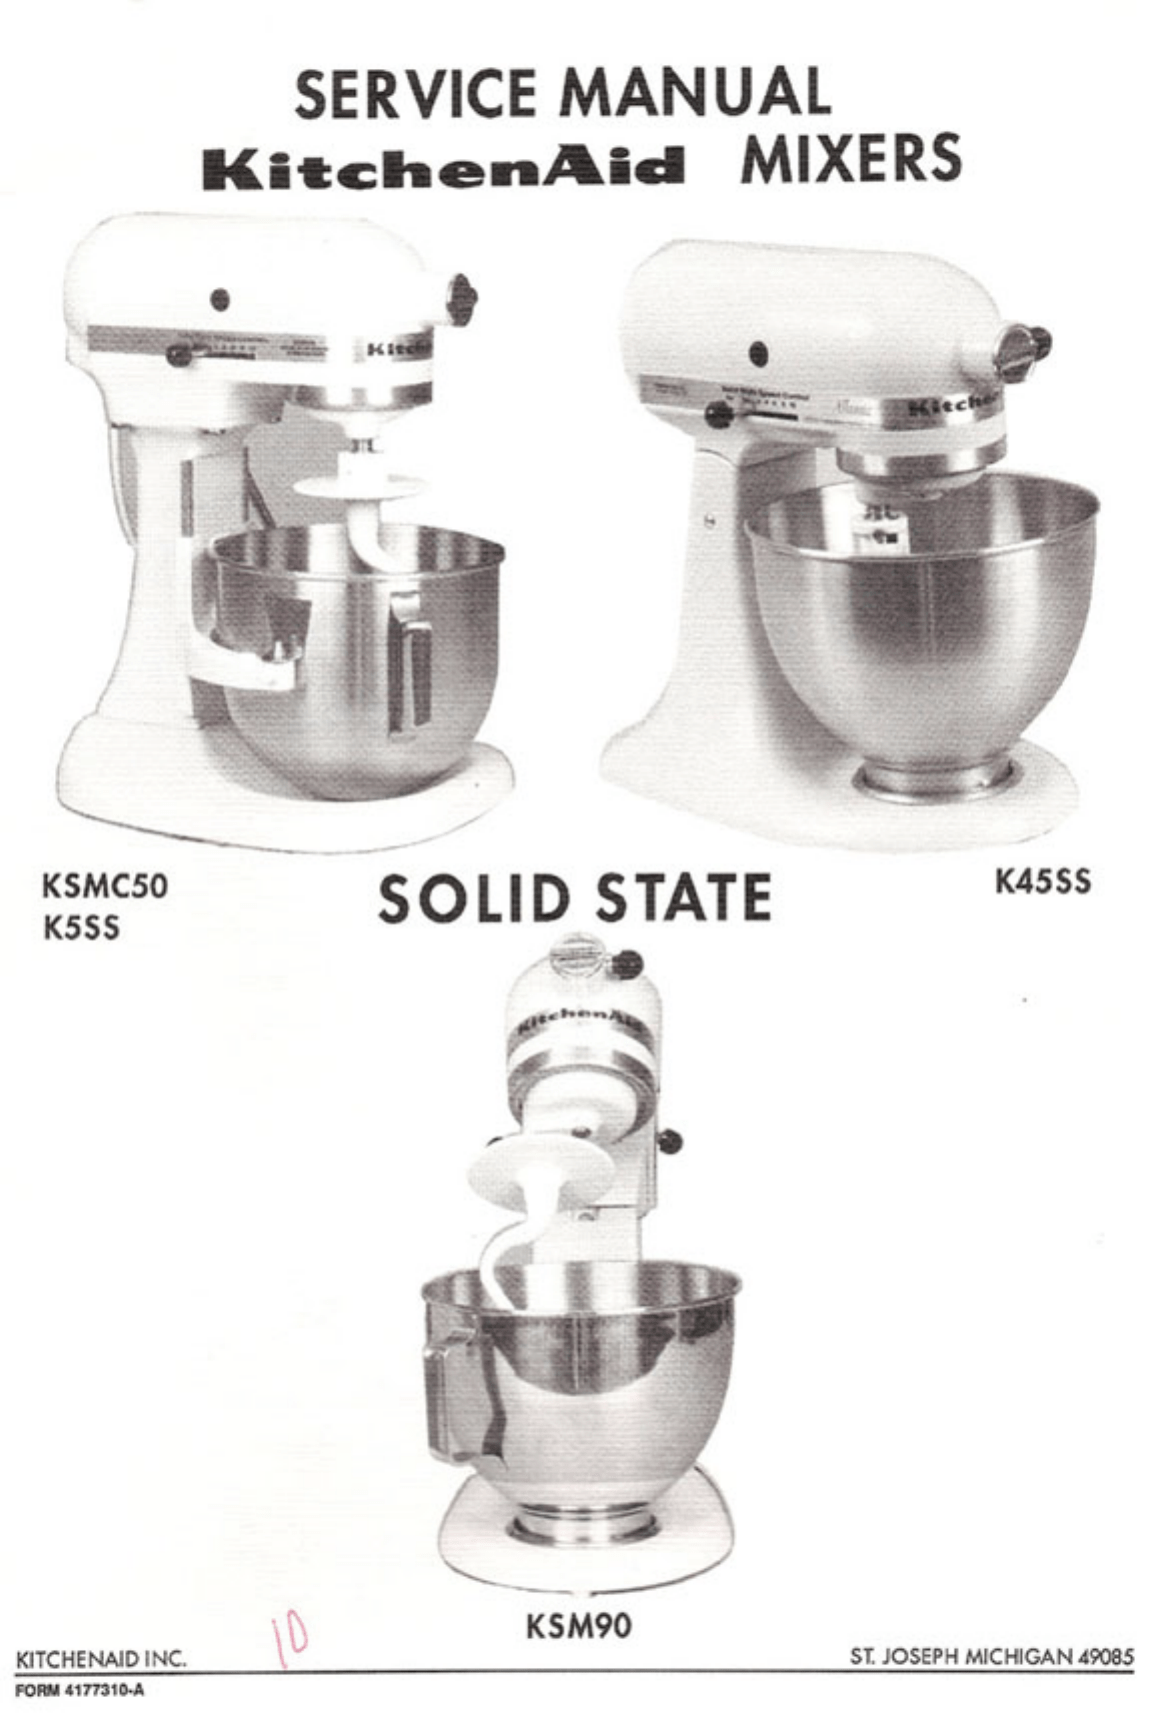 kitchenaid mixer model k5ss attachments rh pandarestaurant us kitchenaid k5ss owners manual KitchenAid Mixer K5SS Parts